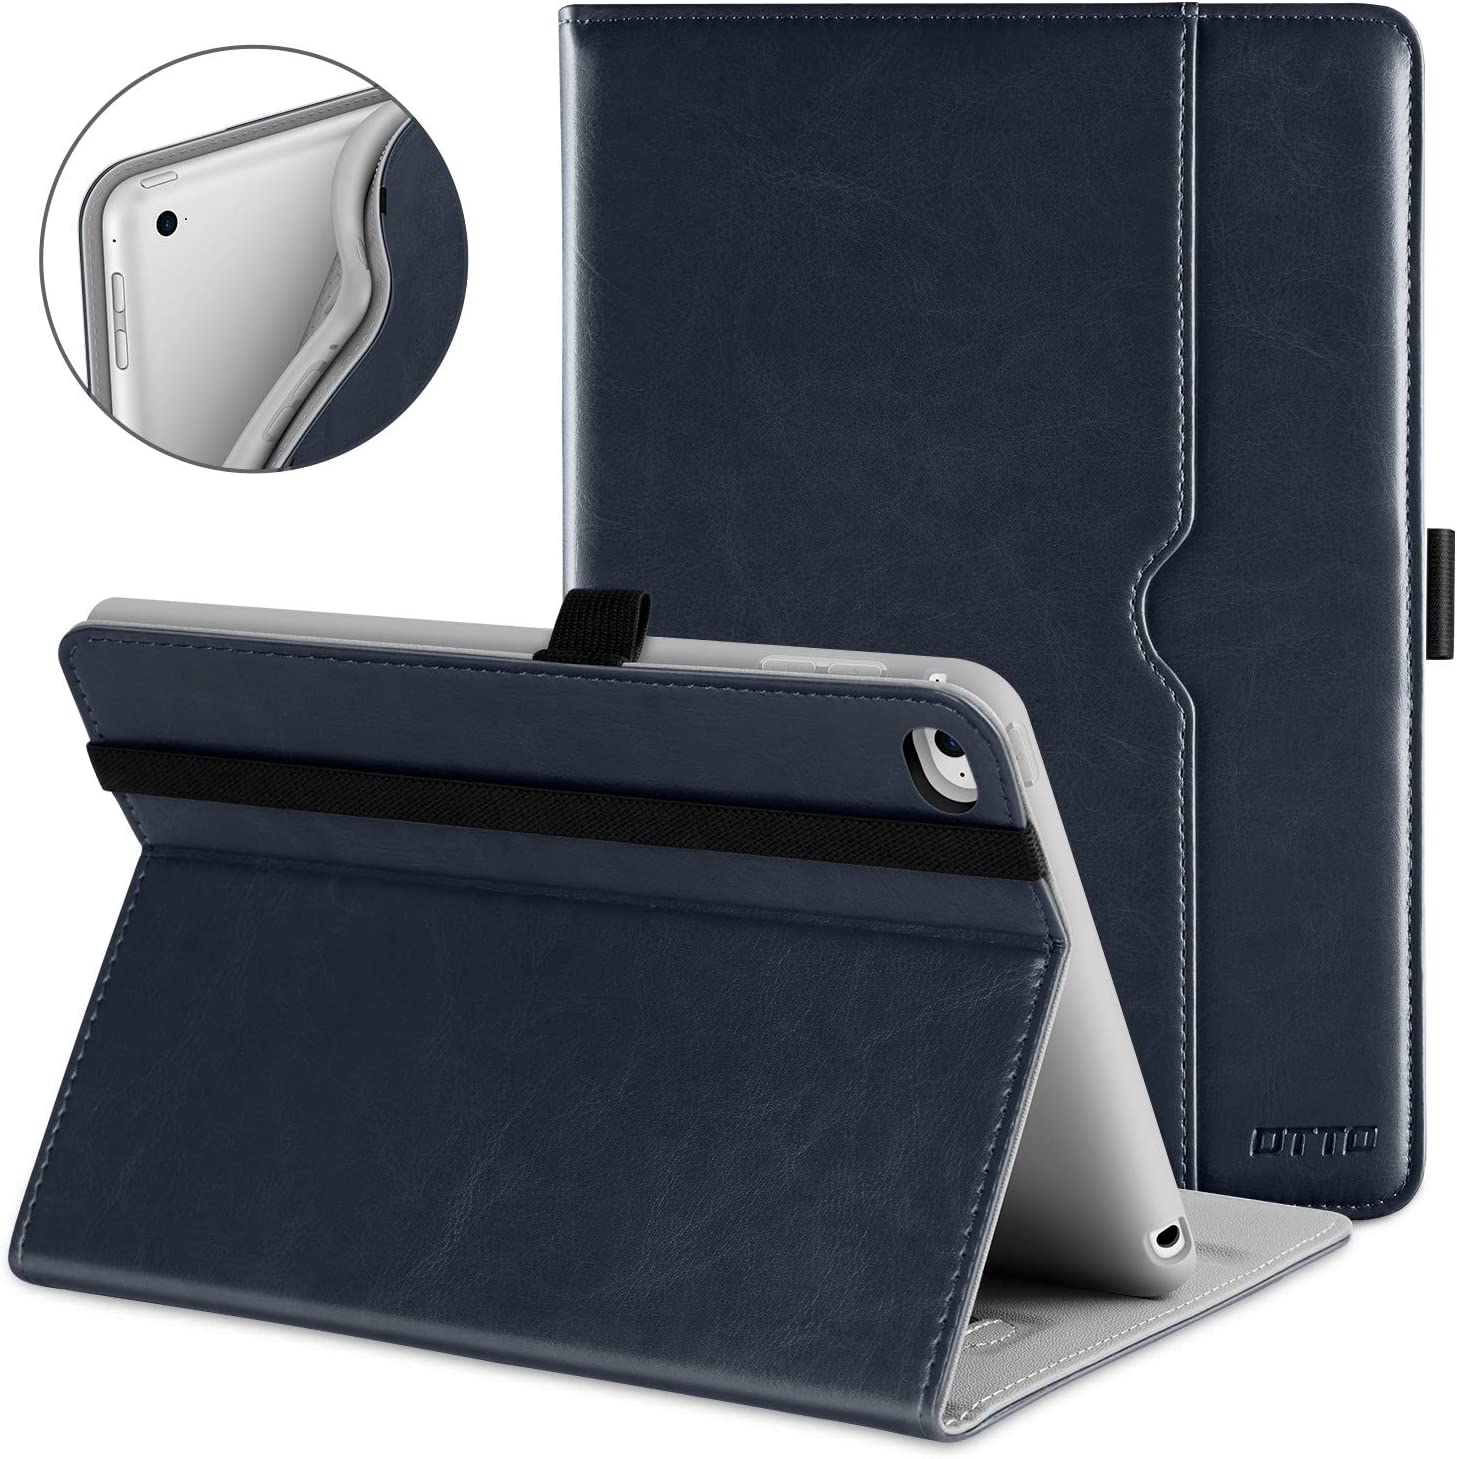 DTTO iPad Mini 4 Case, Premium Leather Folio Stand Cover Case with Multi-Angle Viewing and Auto Wake-Sleep Function, Front Pocket for Apple iPad Mini 4 - Blue